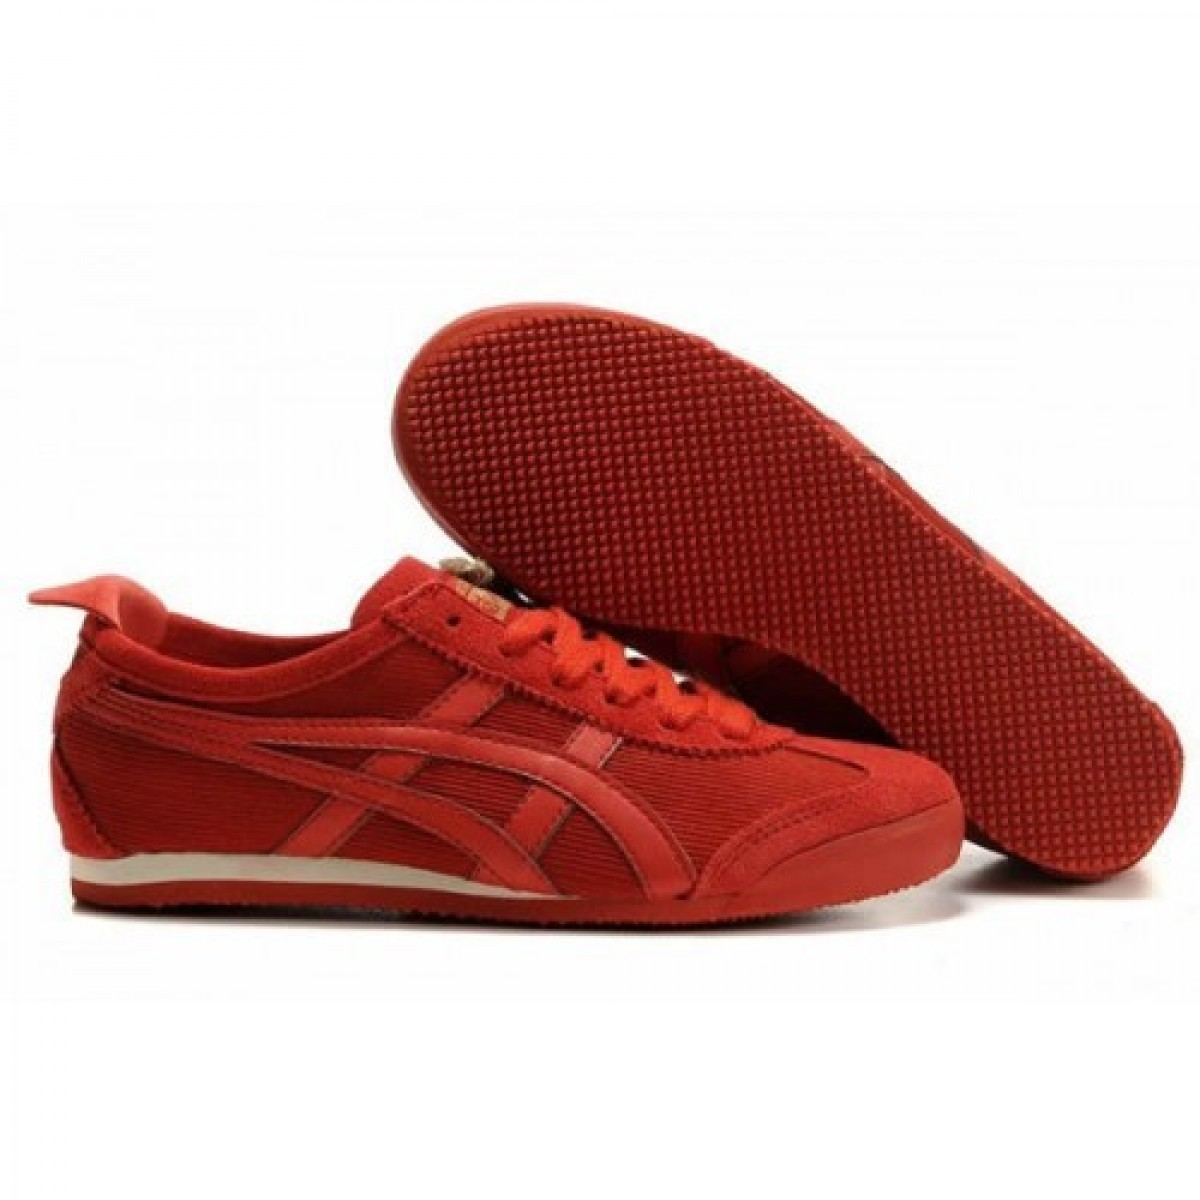 XU7032 Chaussures Soldes Asics Onitsuka Tiger Mexico 66 Femmes Tous rouges 98777348 Pas Cher